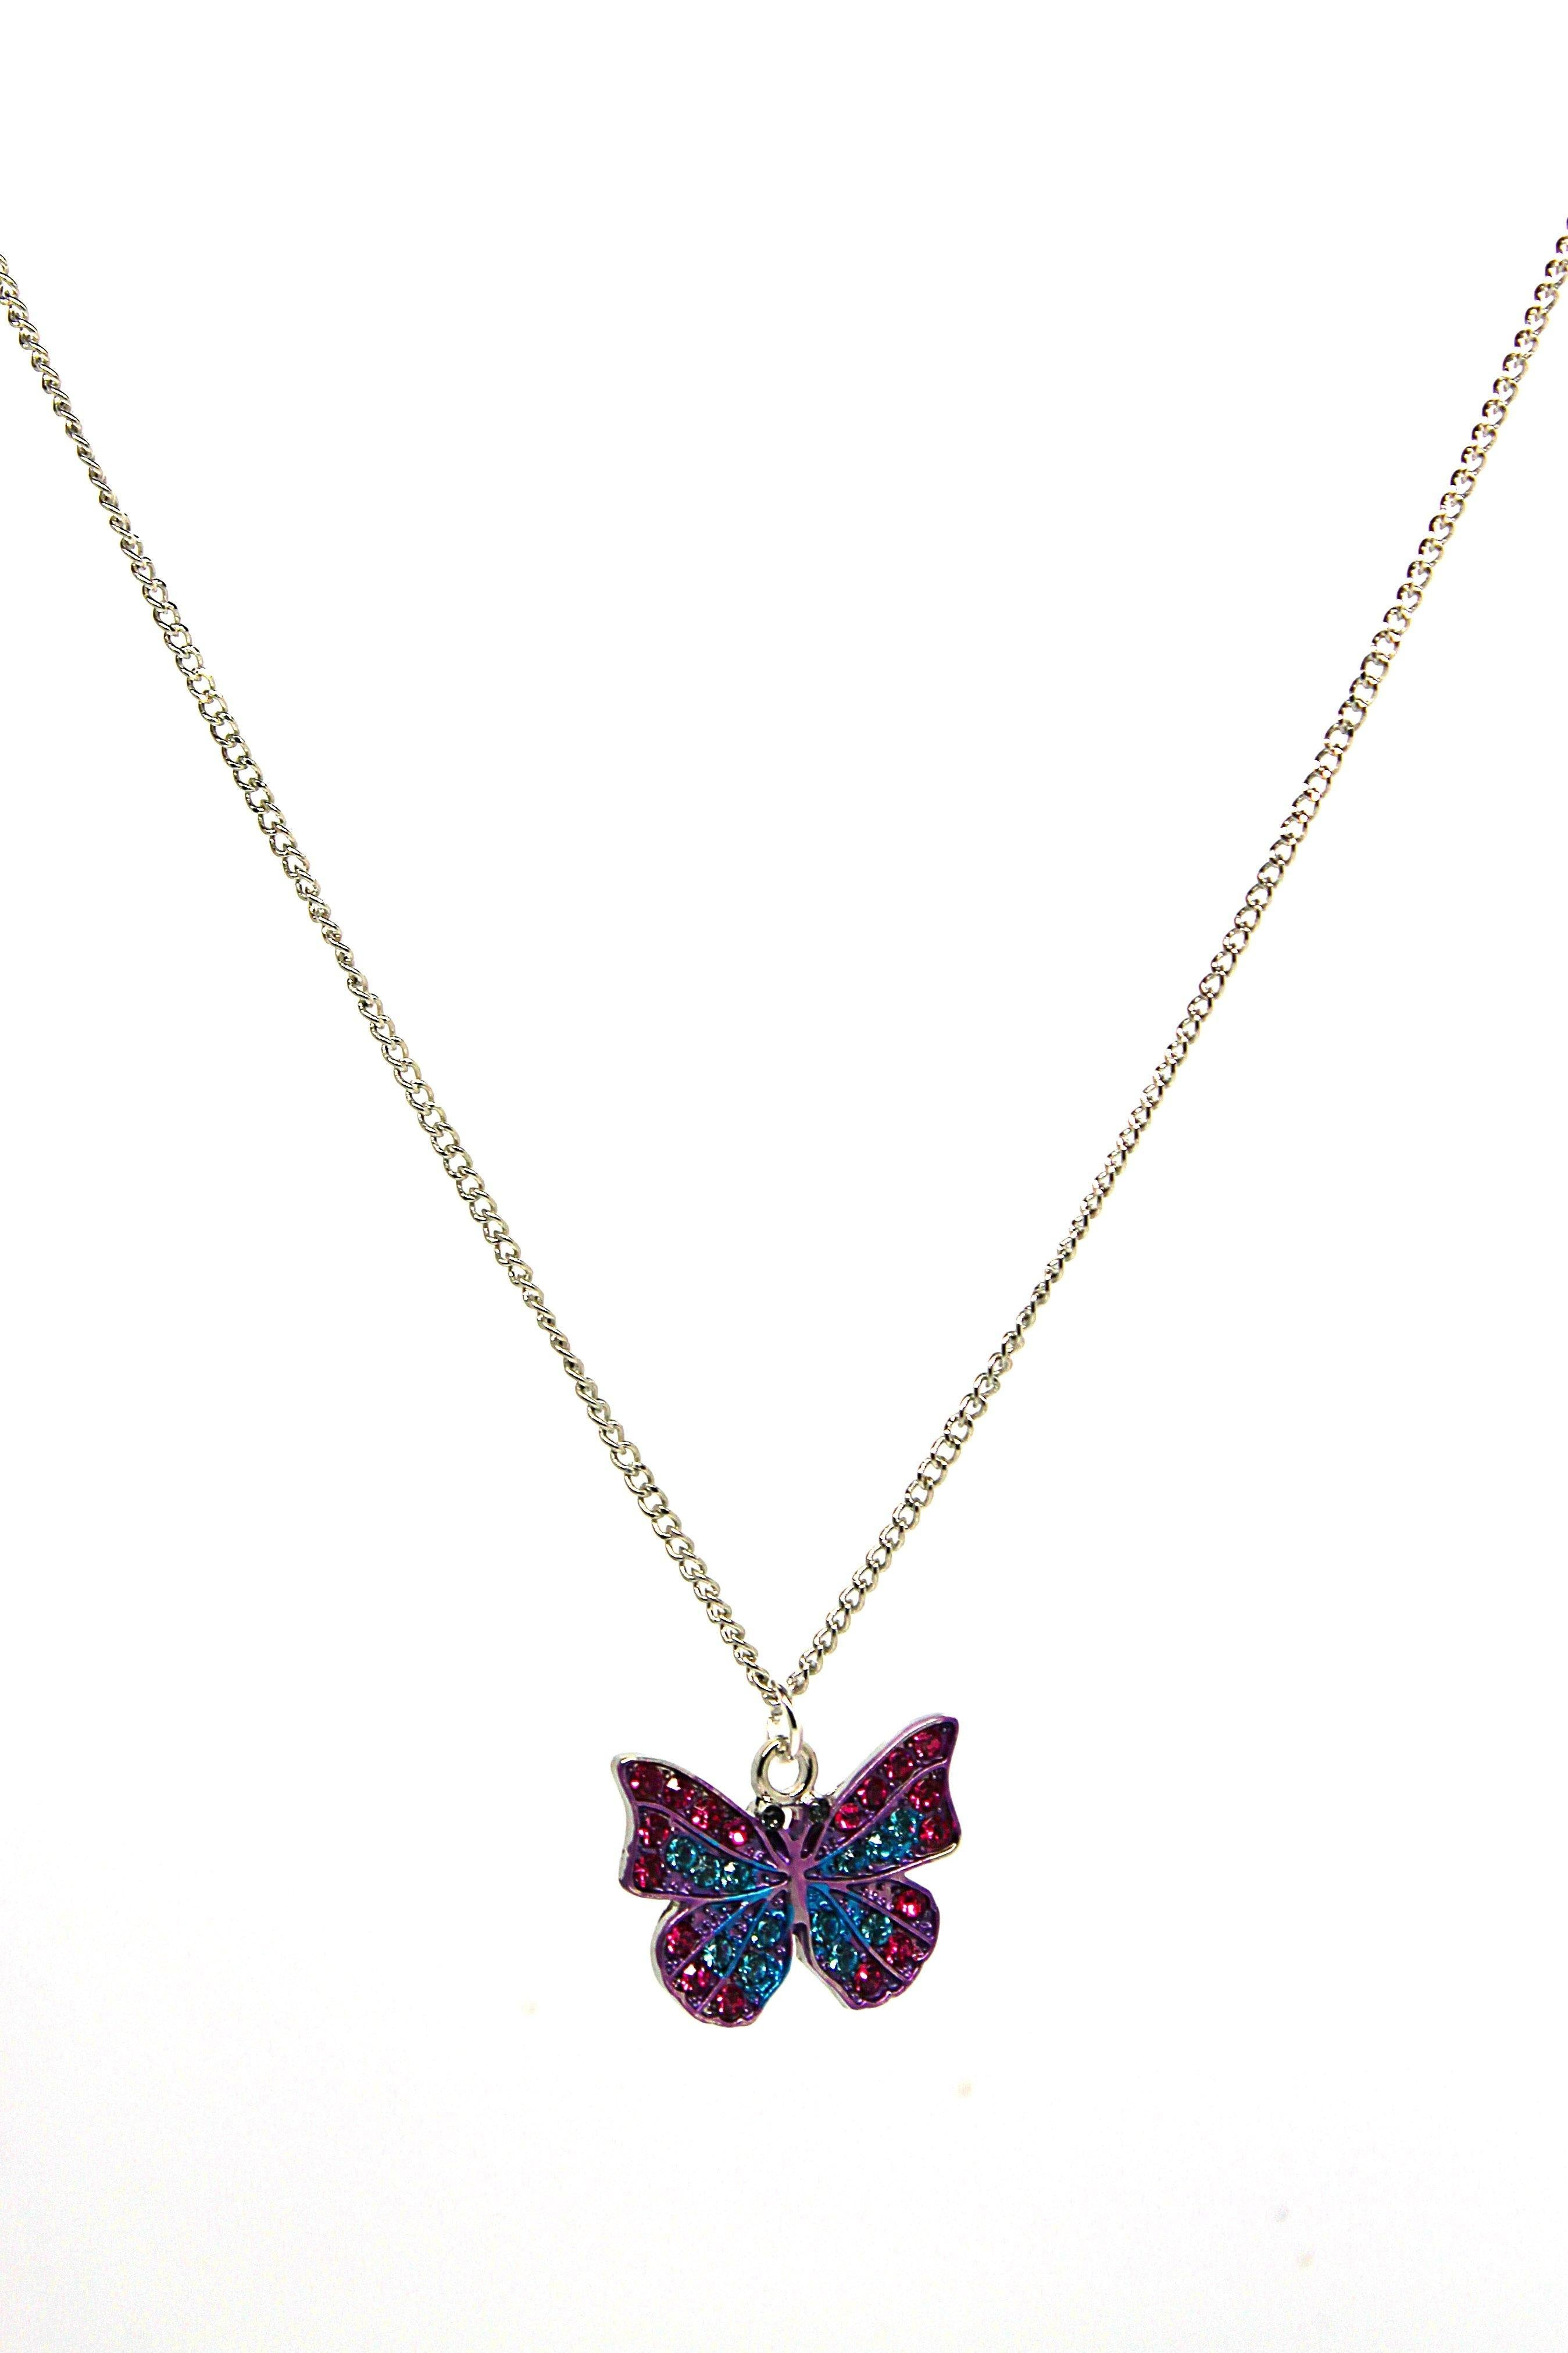 Butterfly Pink & Blue Necklace - Wildtouch - Wildtouch